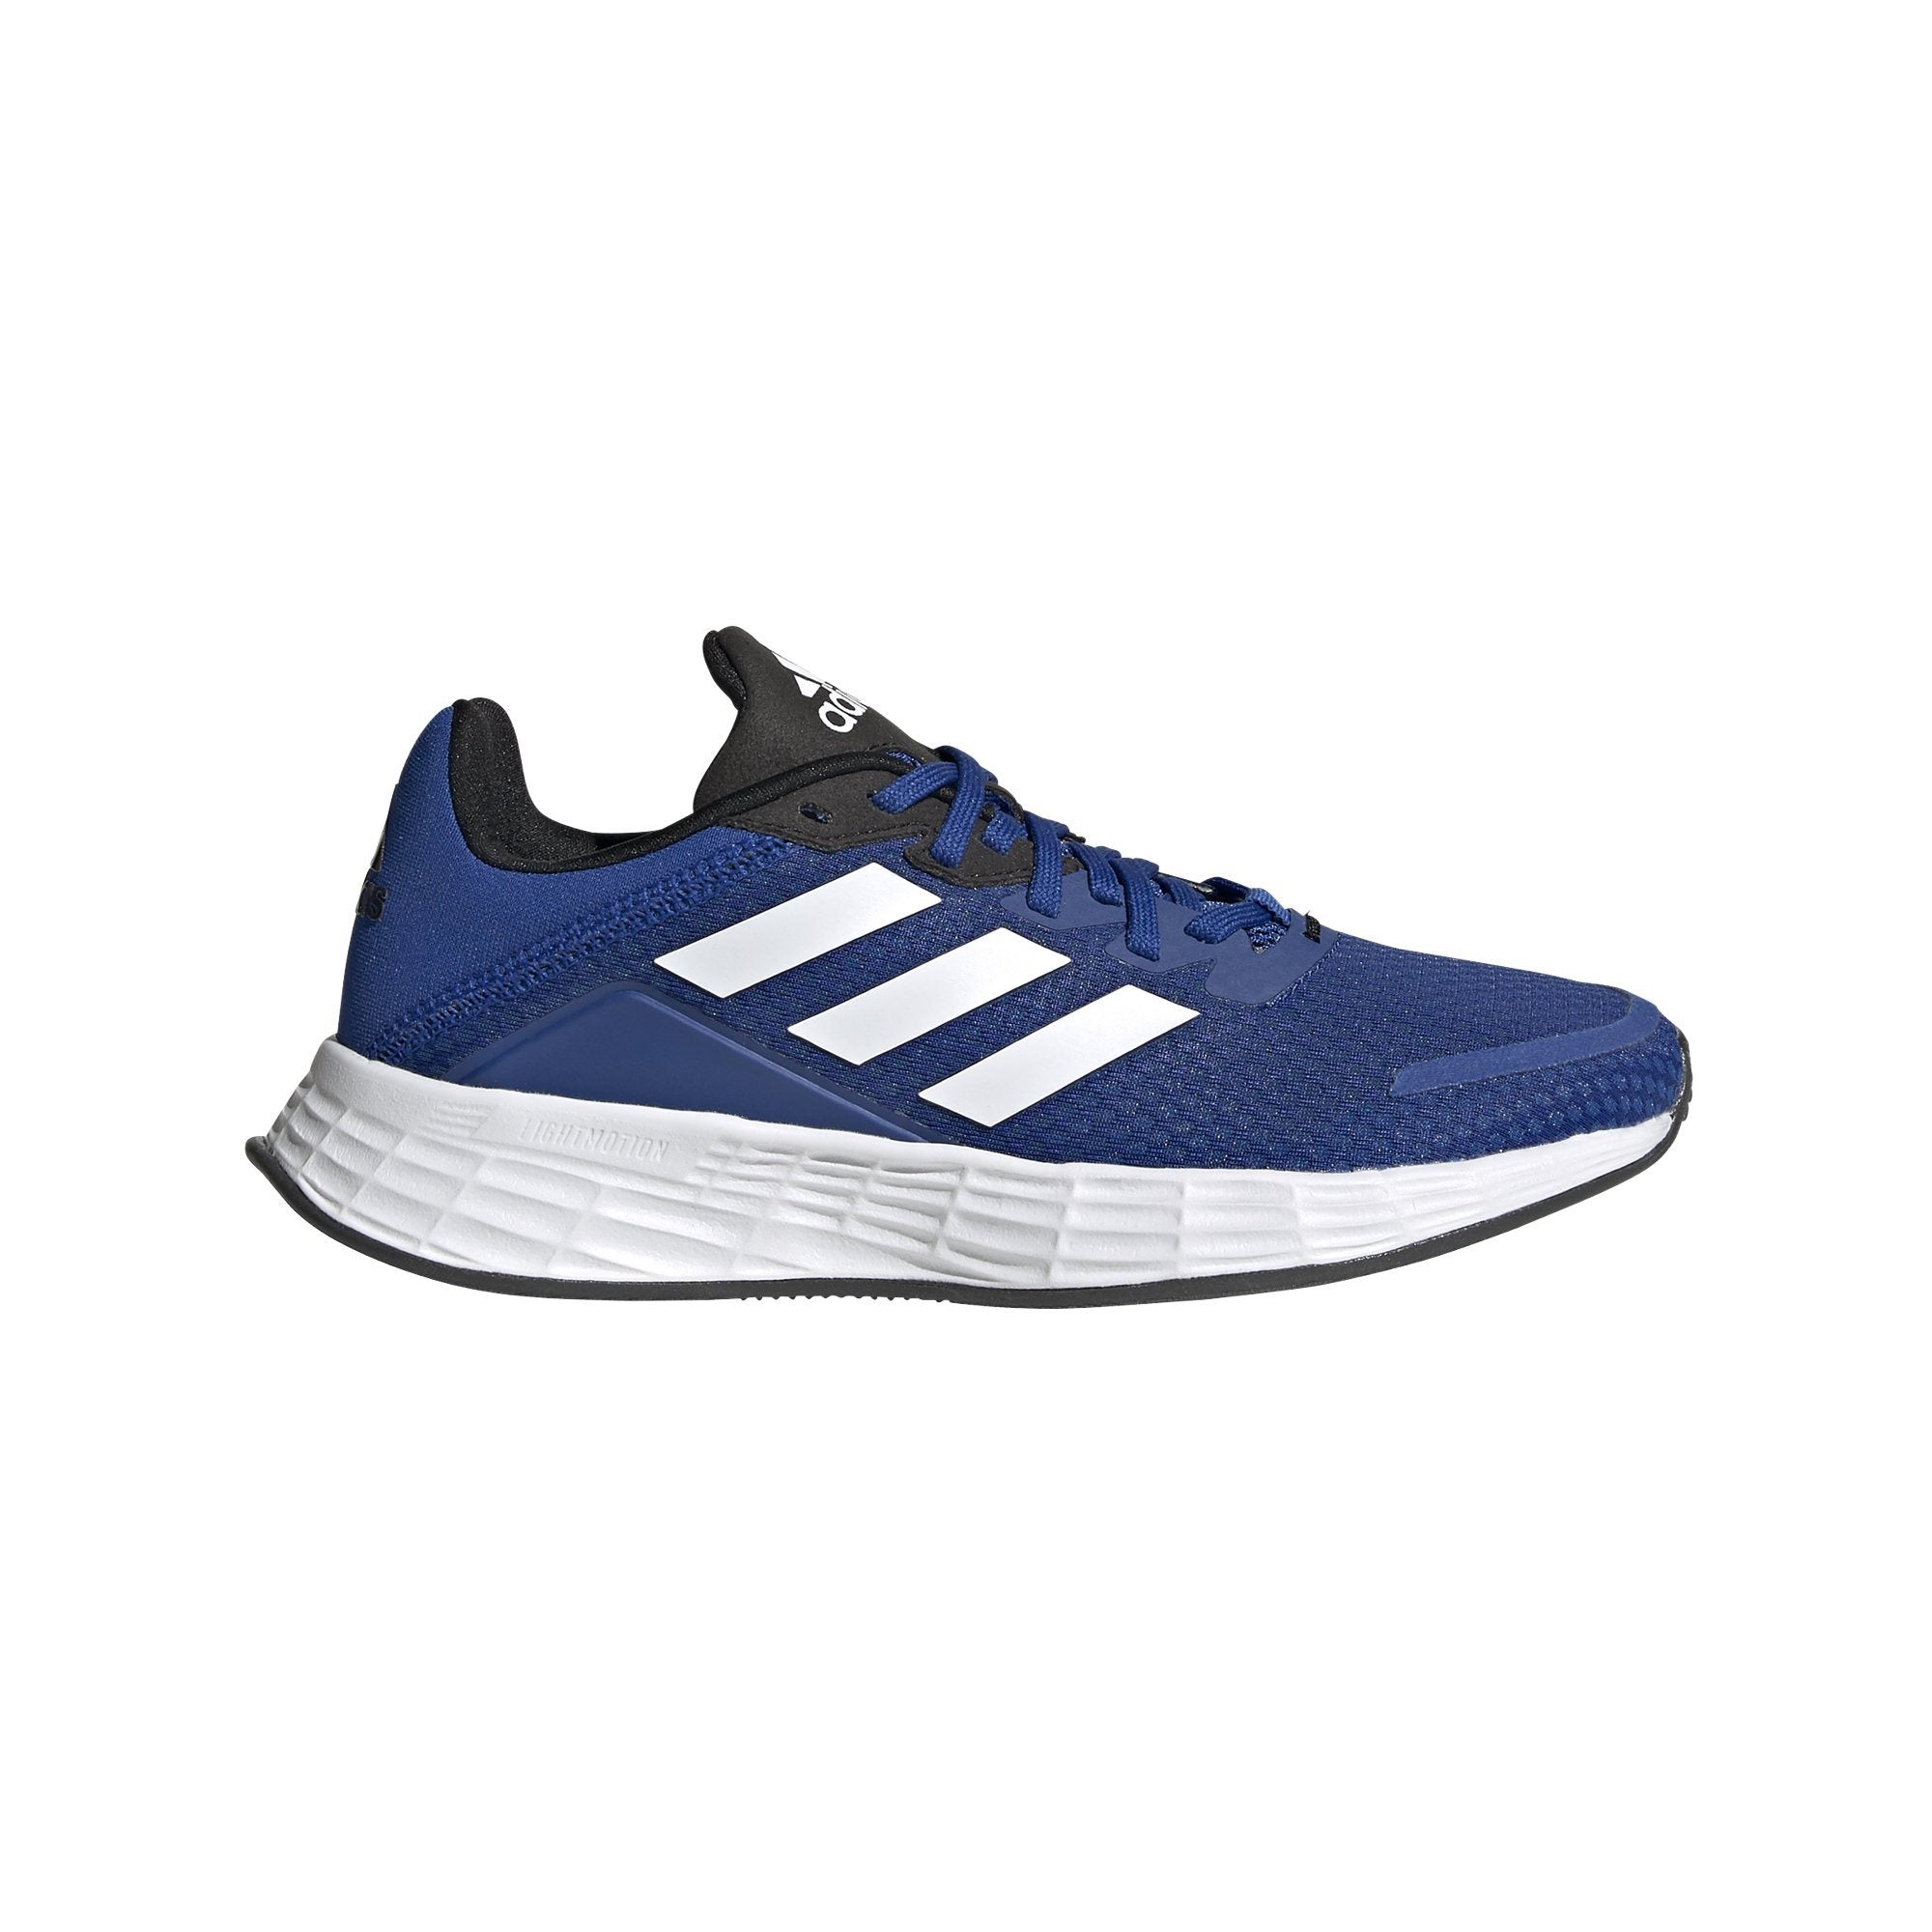 Adidas Kid's Duramo SL K - Royal Blue/Ftwr White/Core Black